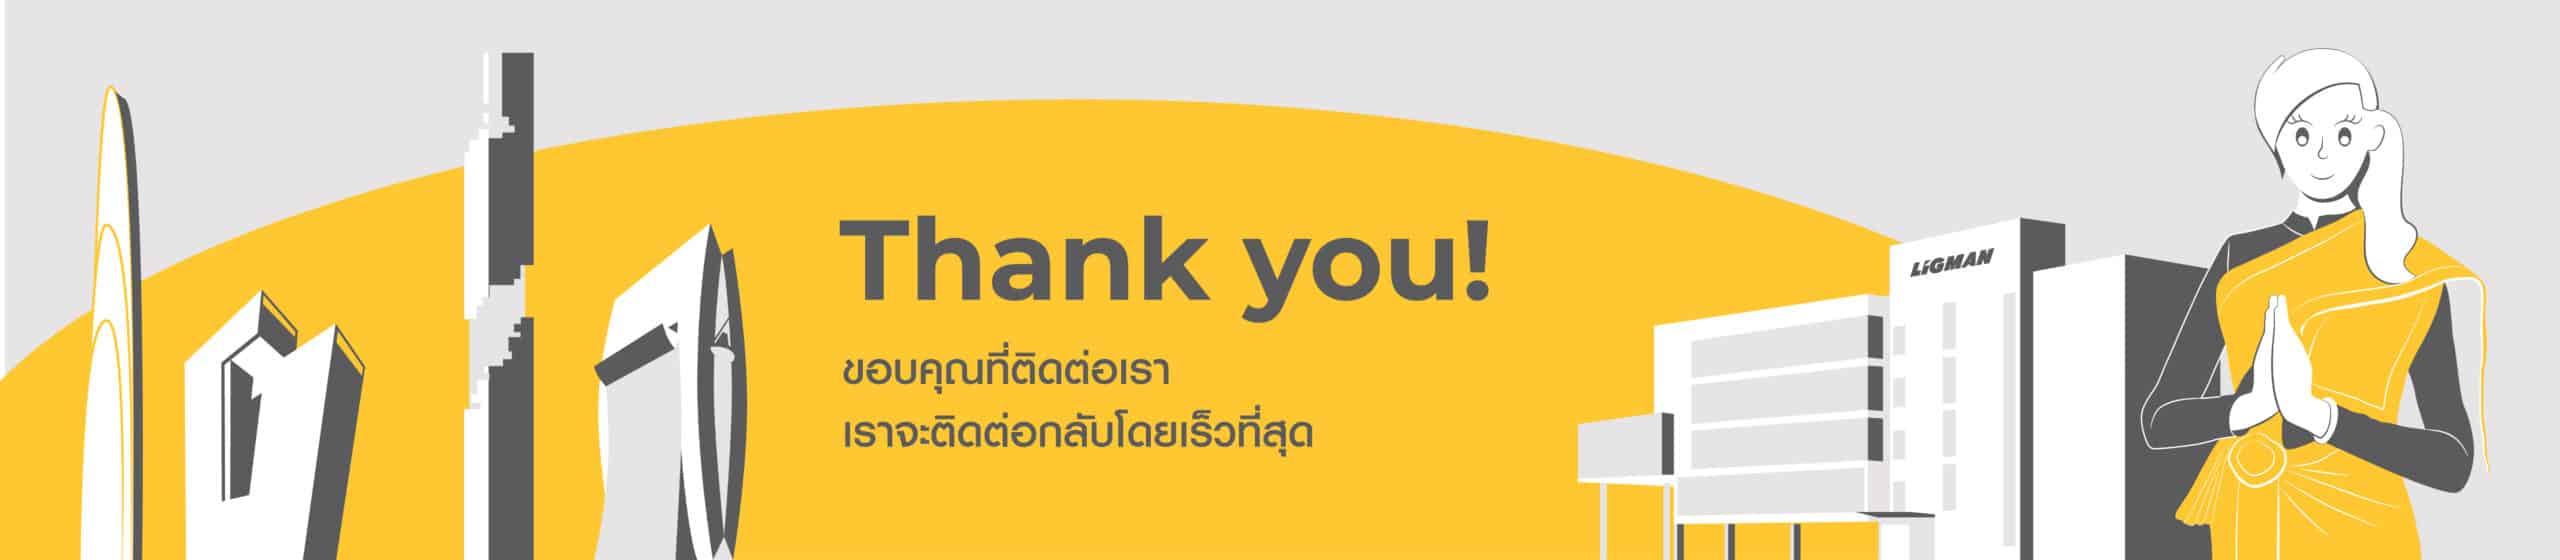 Landing Page - Thank you TH-01